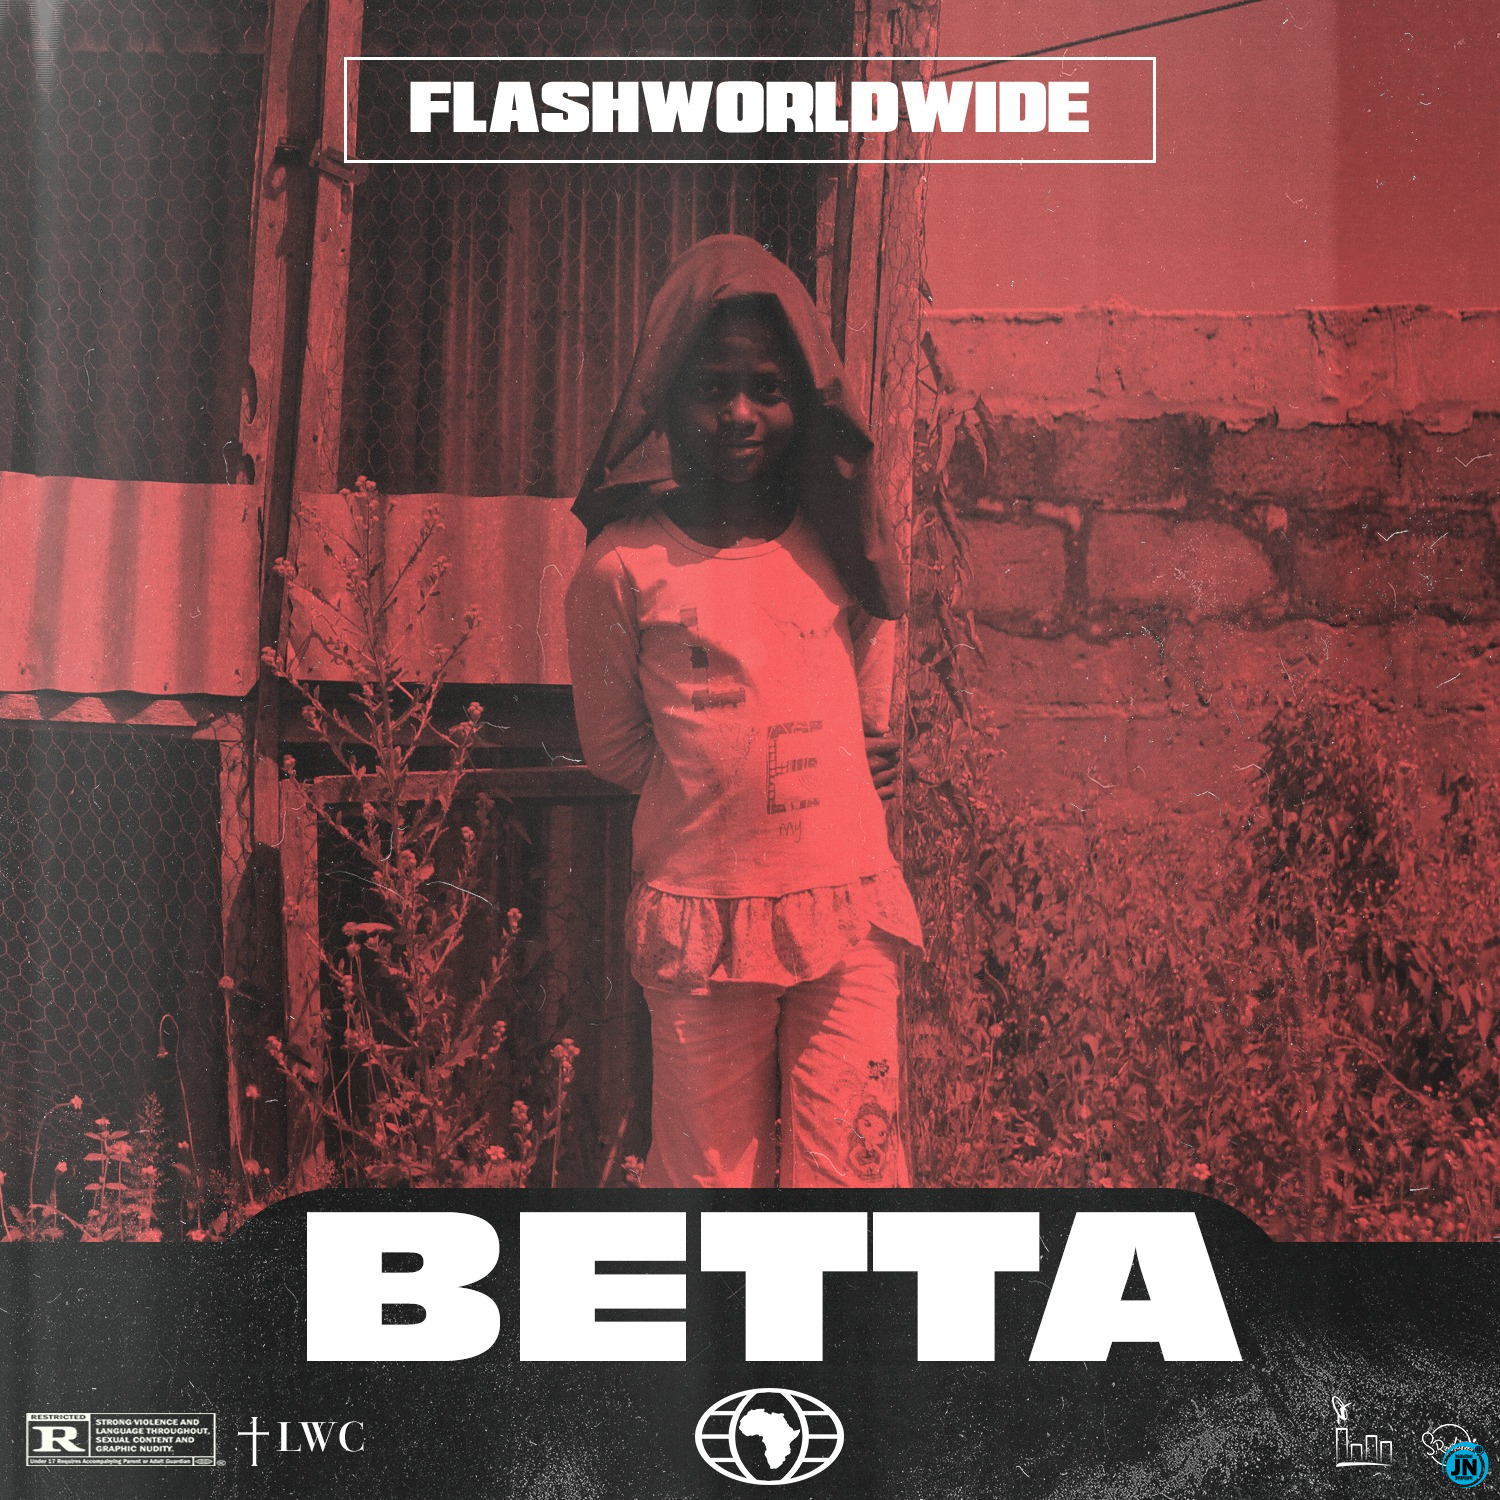 Flash - BETTA